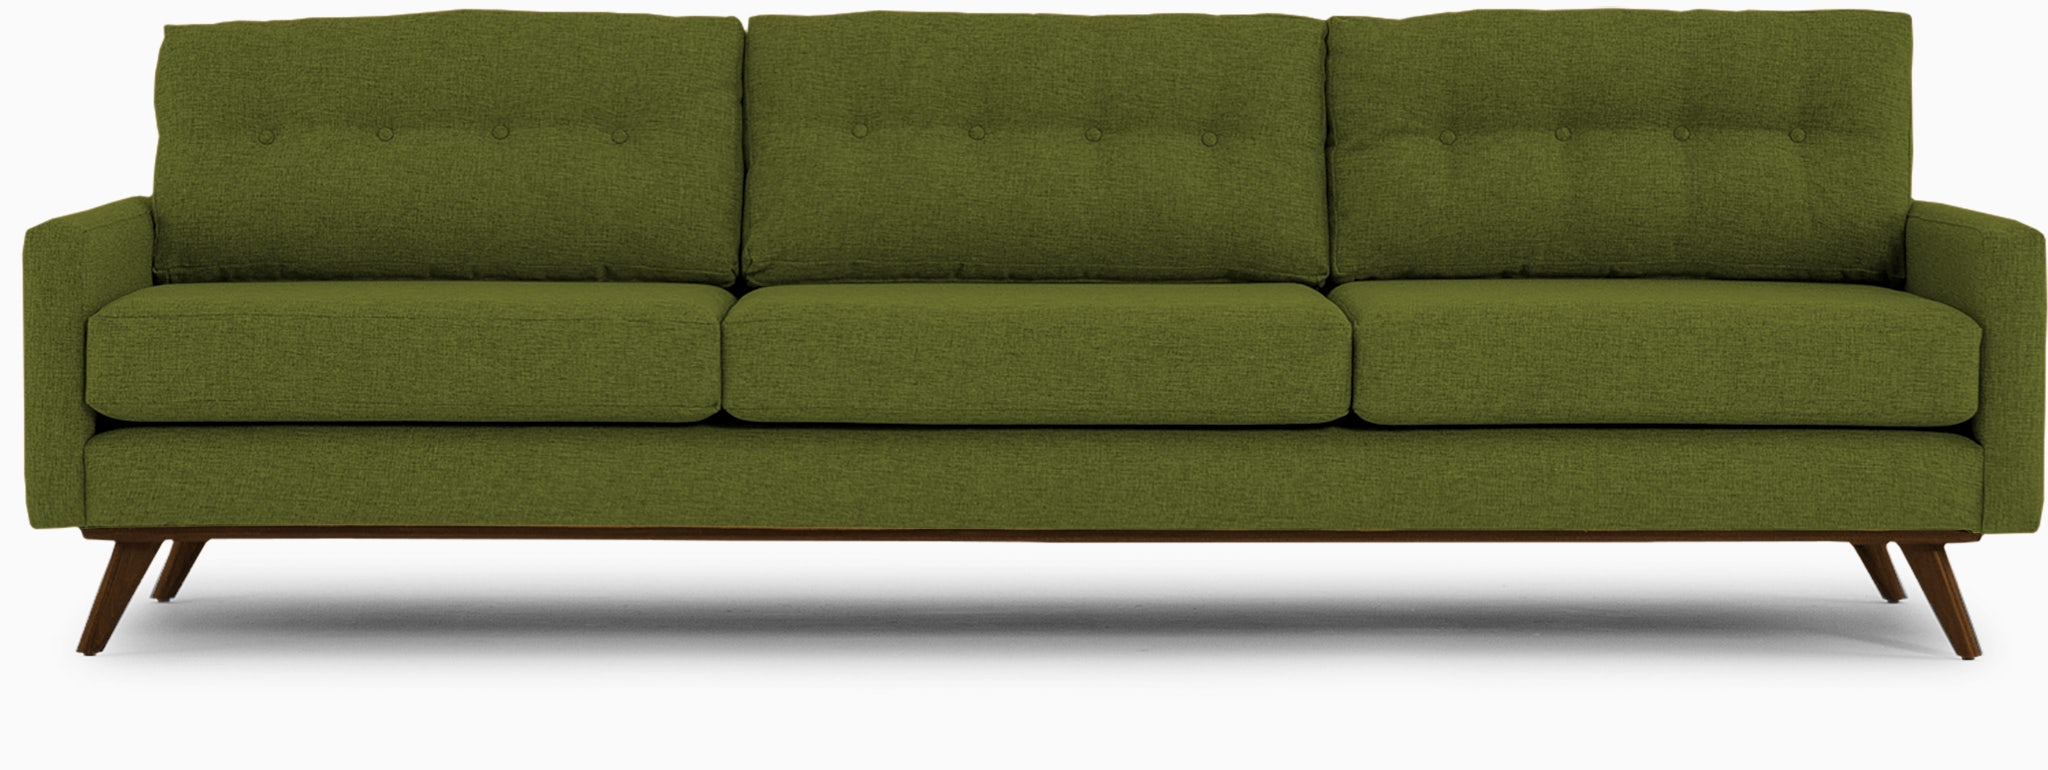 hopson grand sofa royale apple